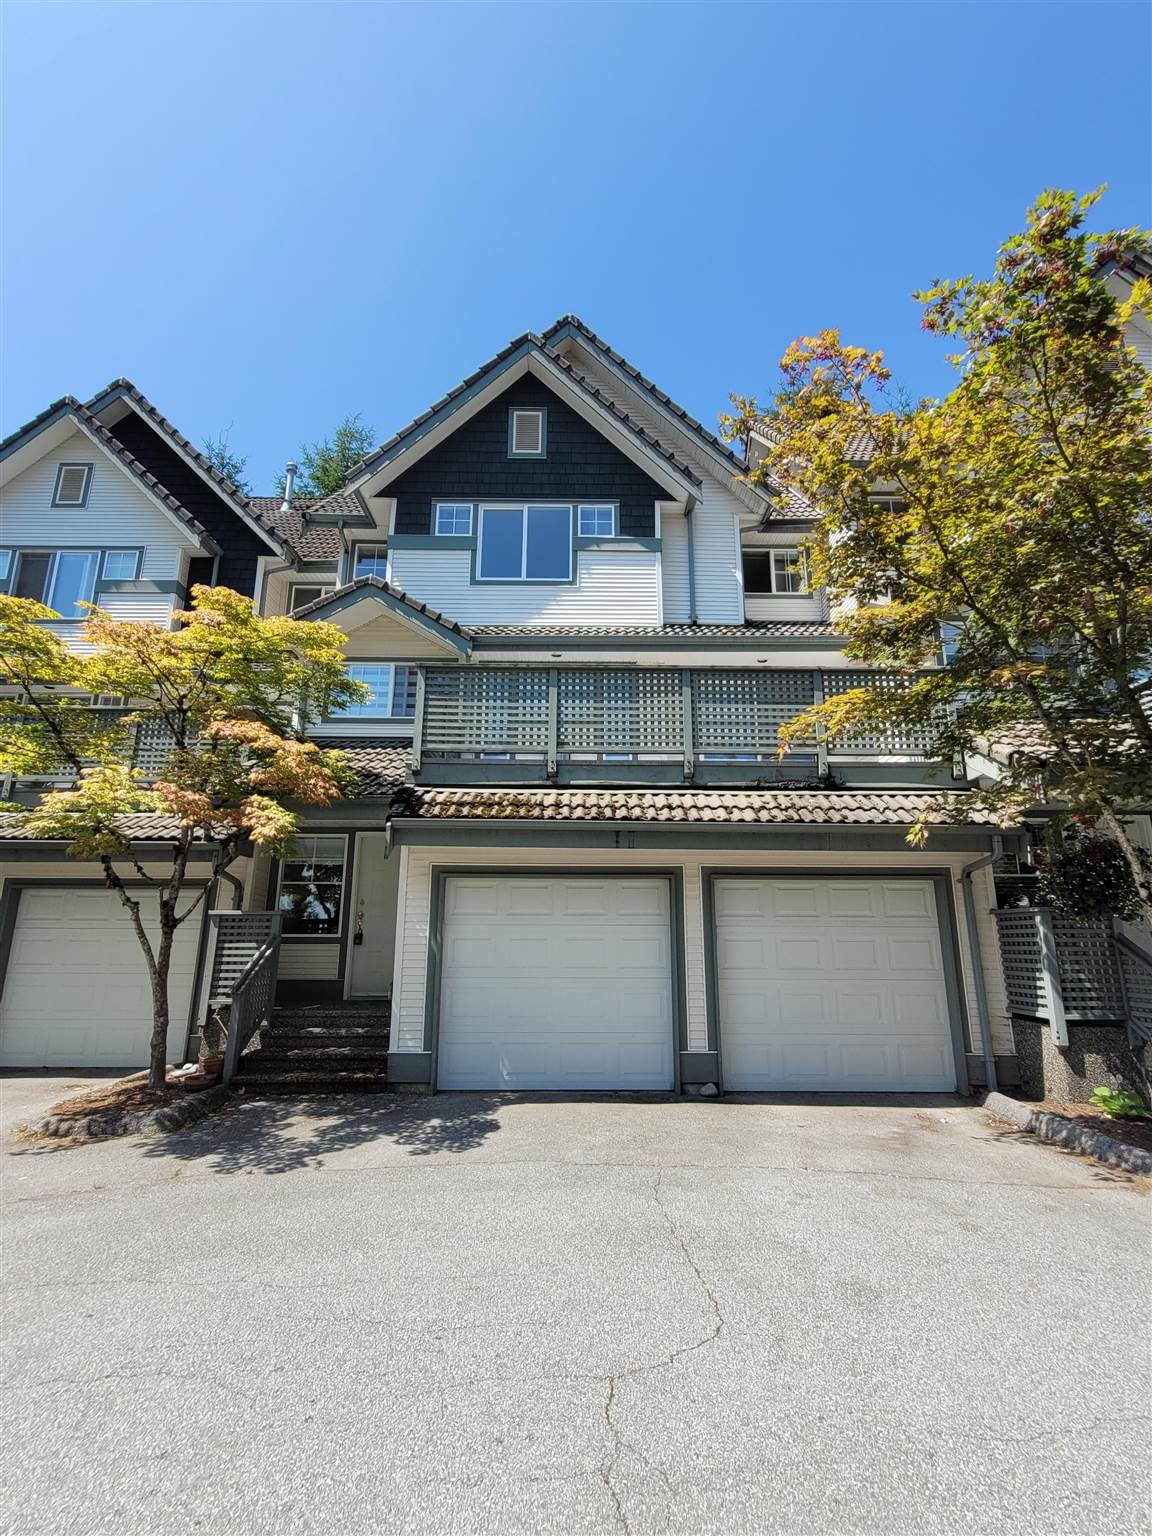 2 2382 PARKWAY BOULEVARD - Westwood Plateau Townhouse for sale, 3 Bedrooms (R2602210) - #1